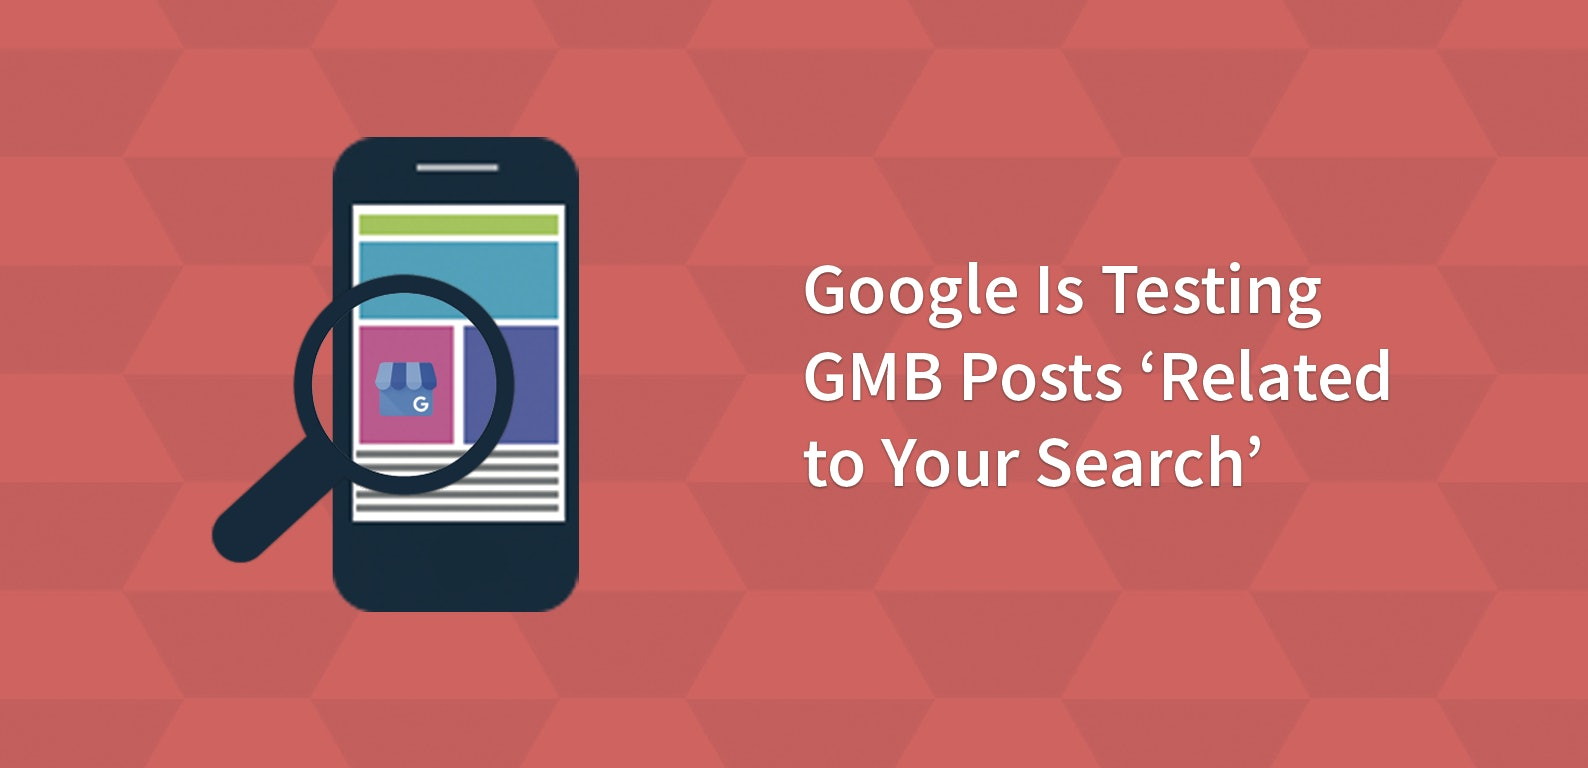 Google Testing GMB Posts 'Related to Your Search'